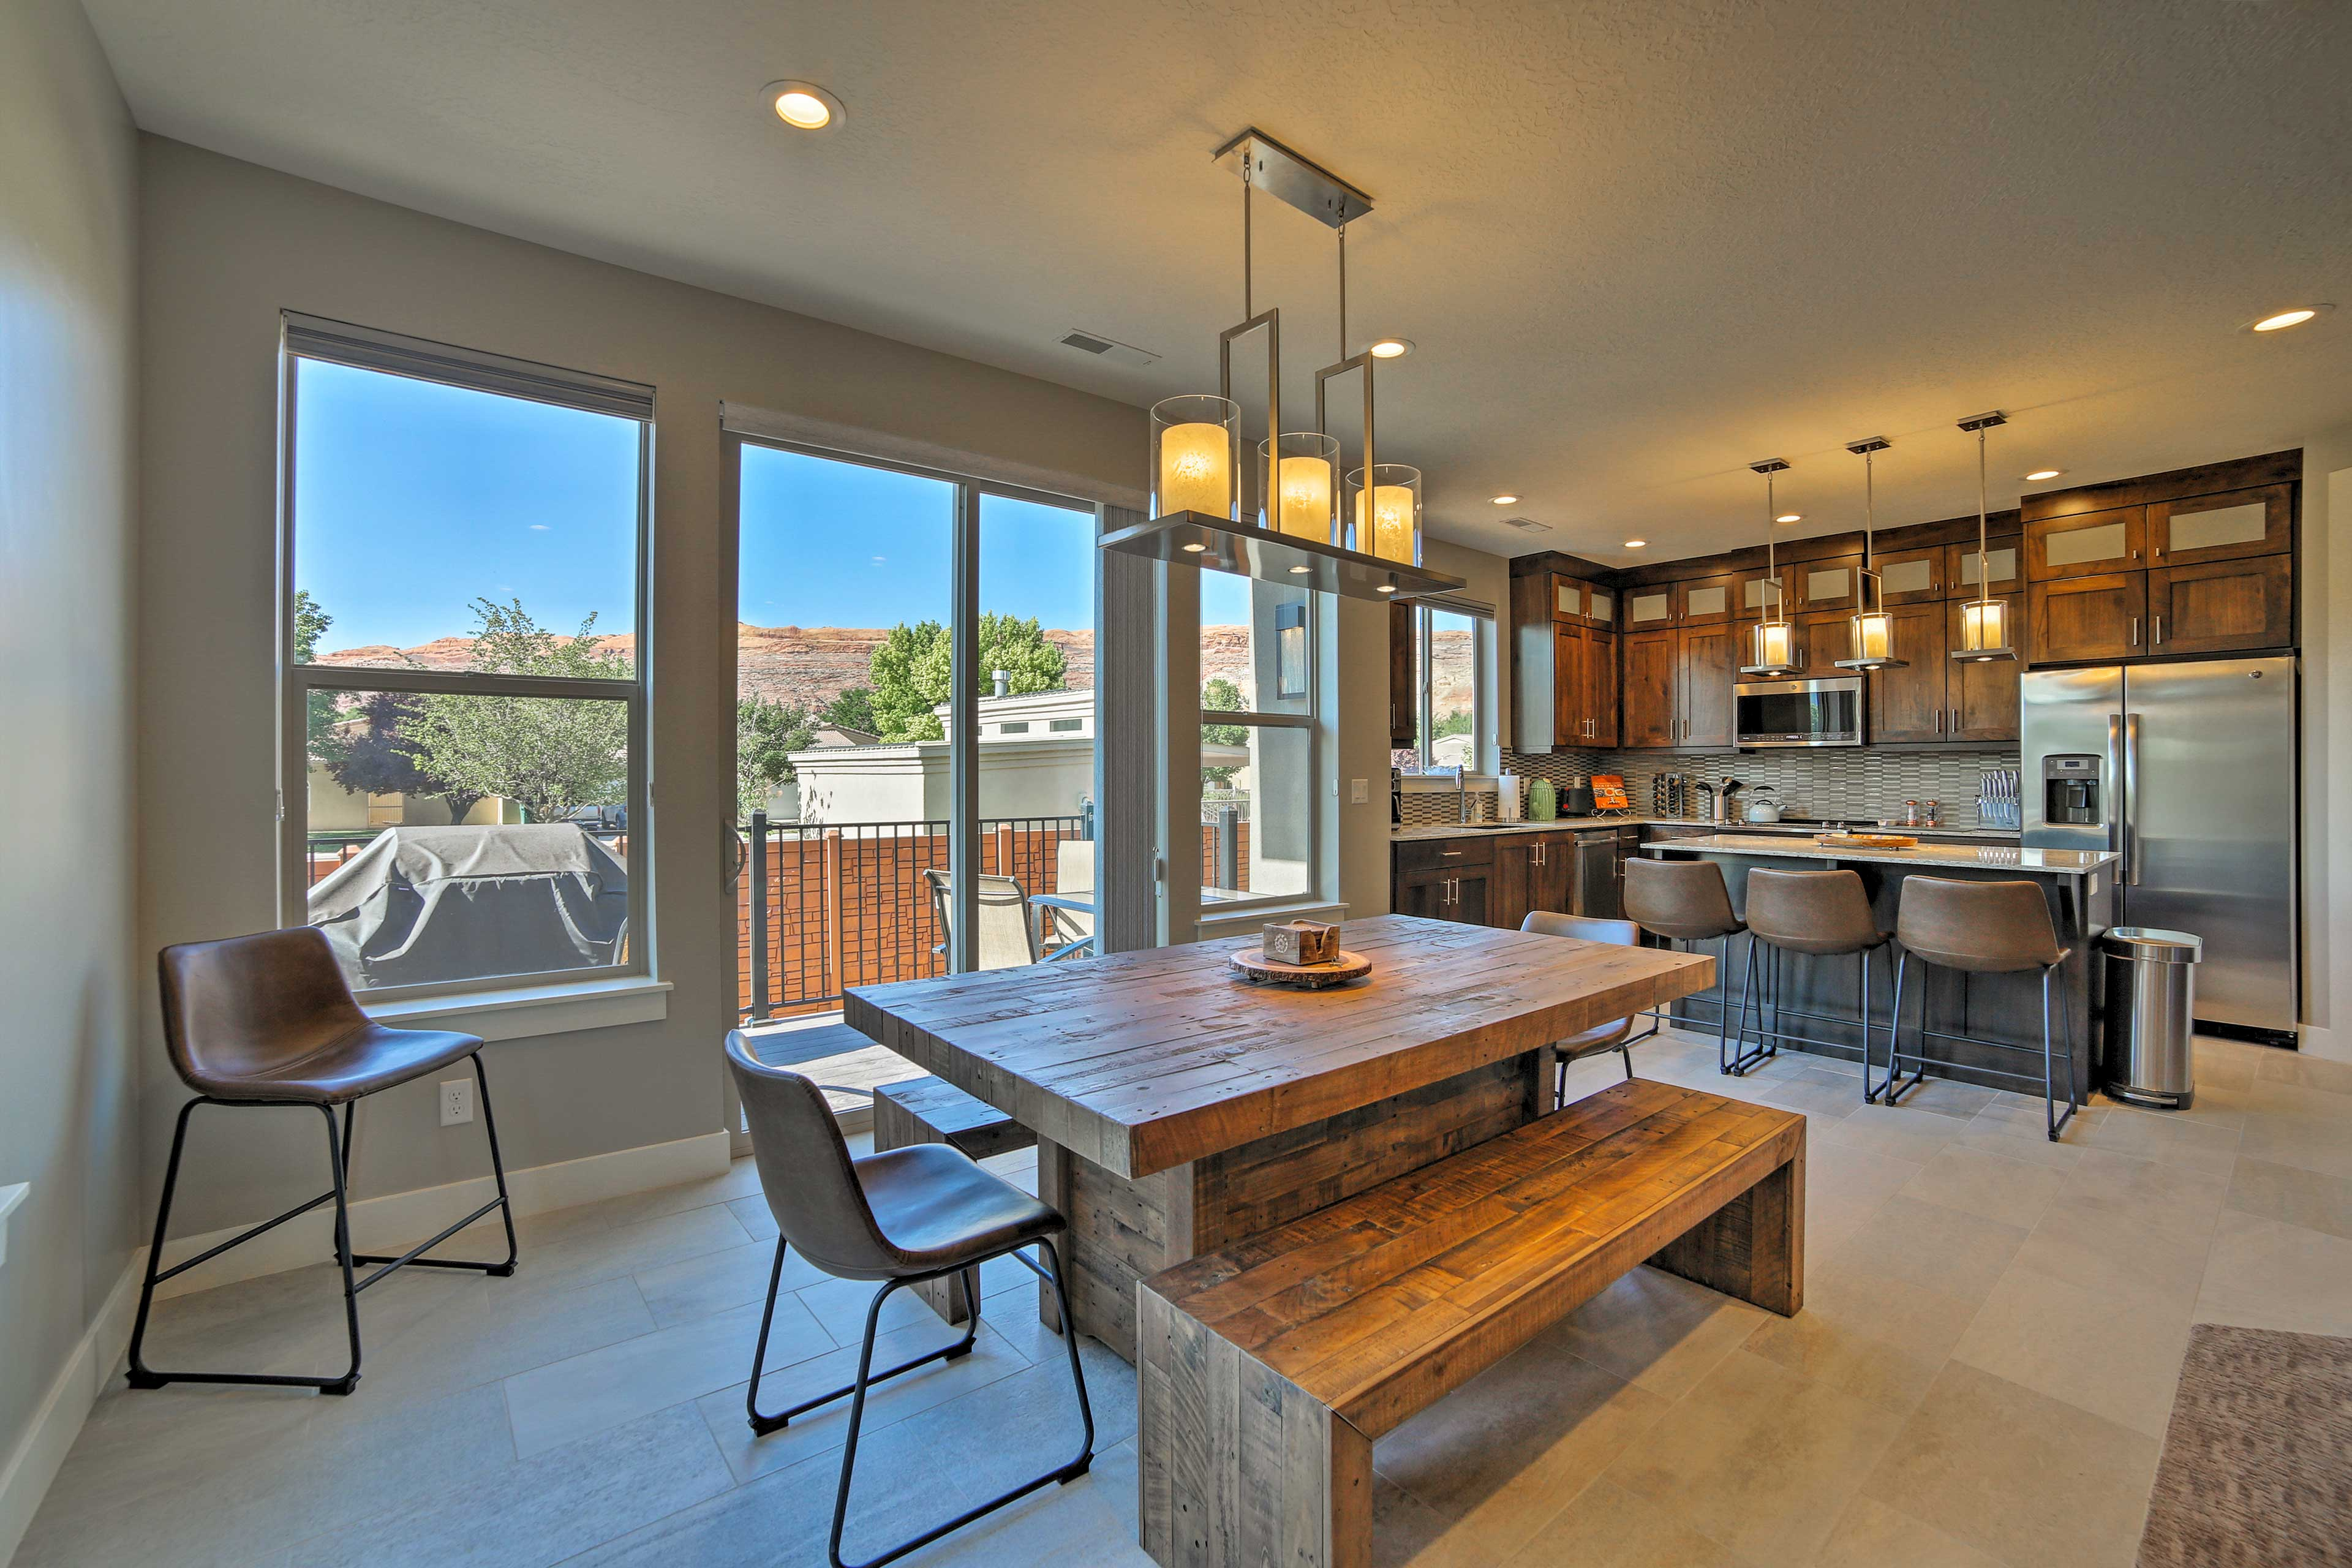 An epic stay awaits you at this 4-bedroom, 3-bath vacation rental townhome.